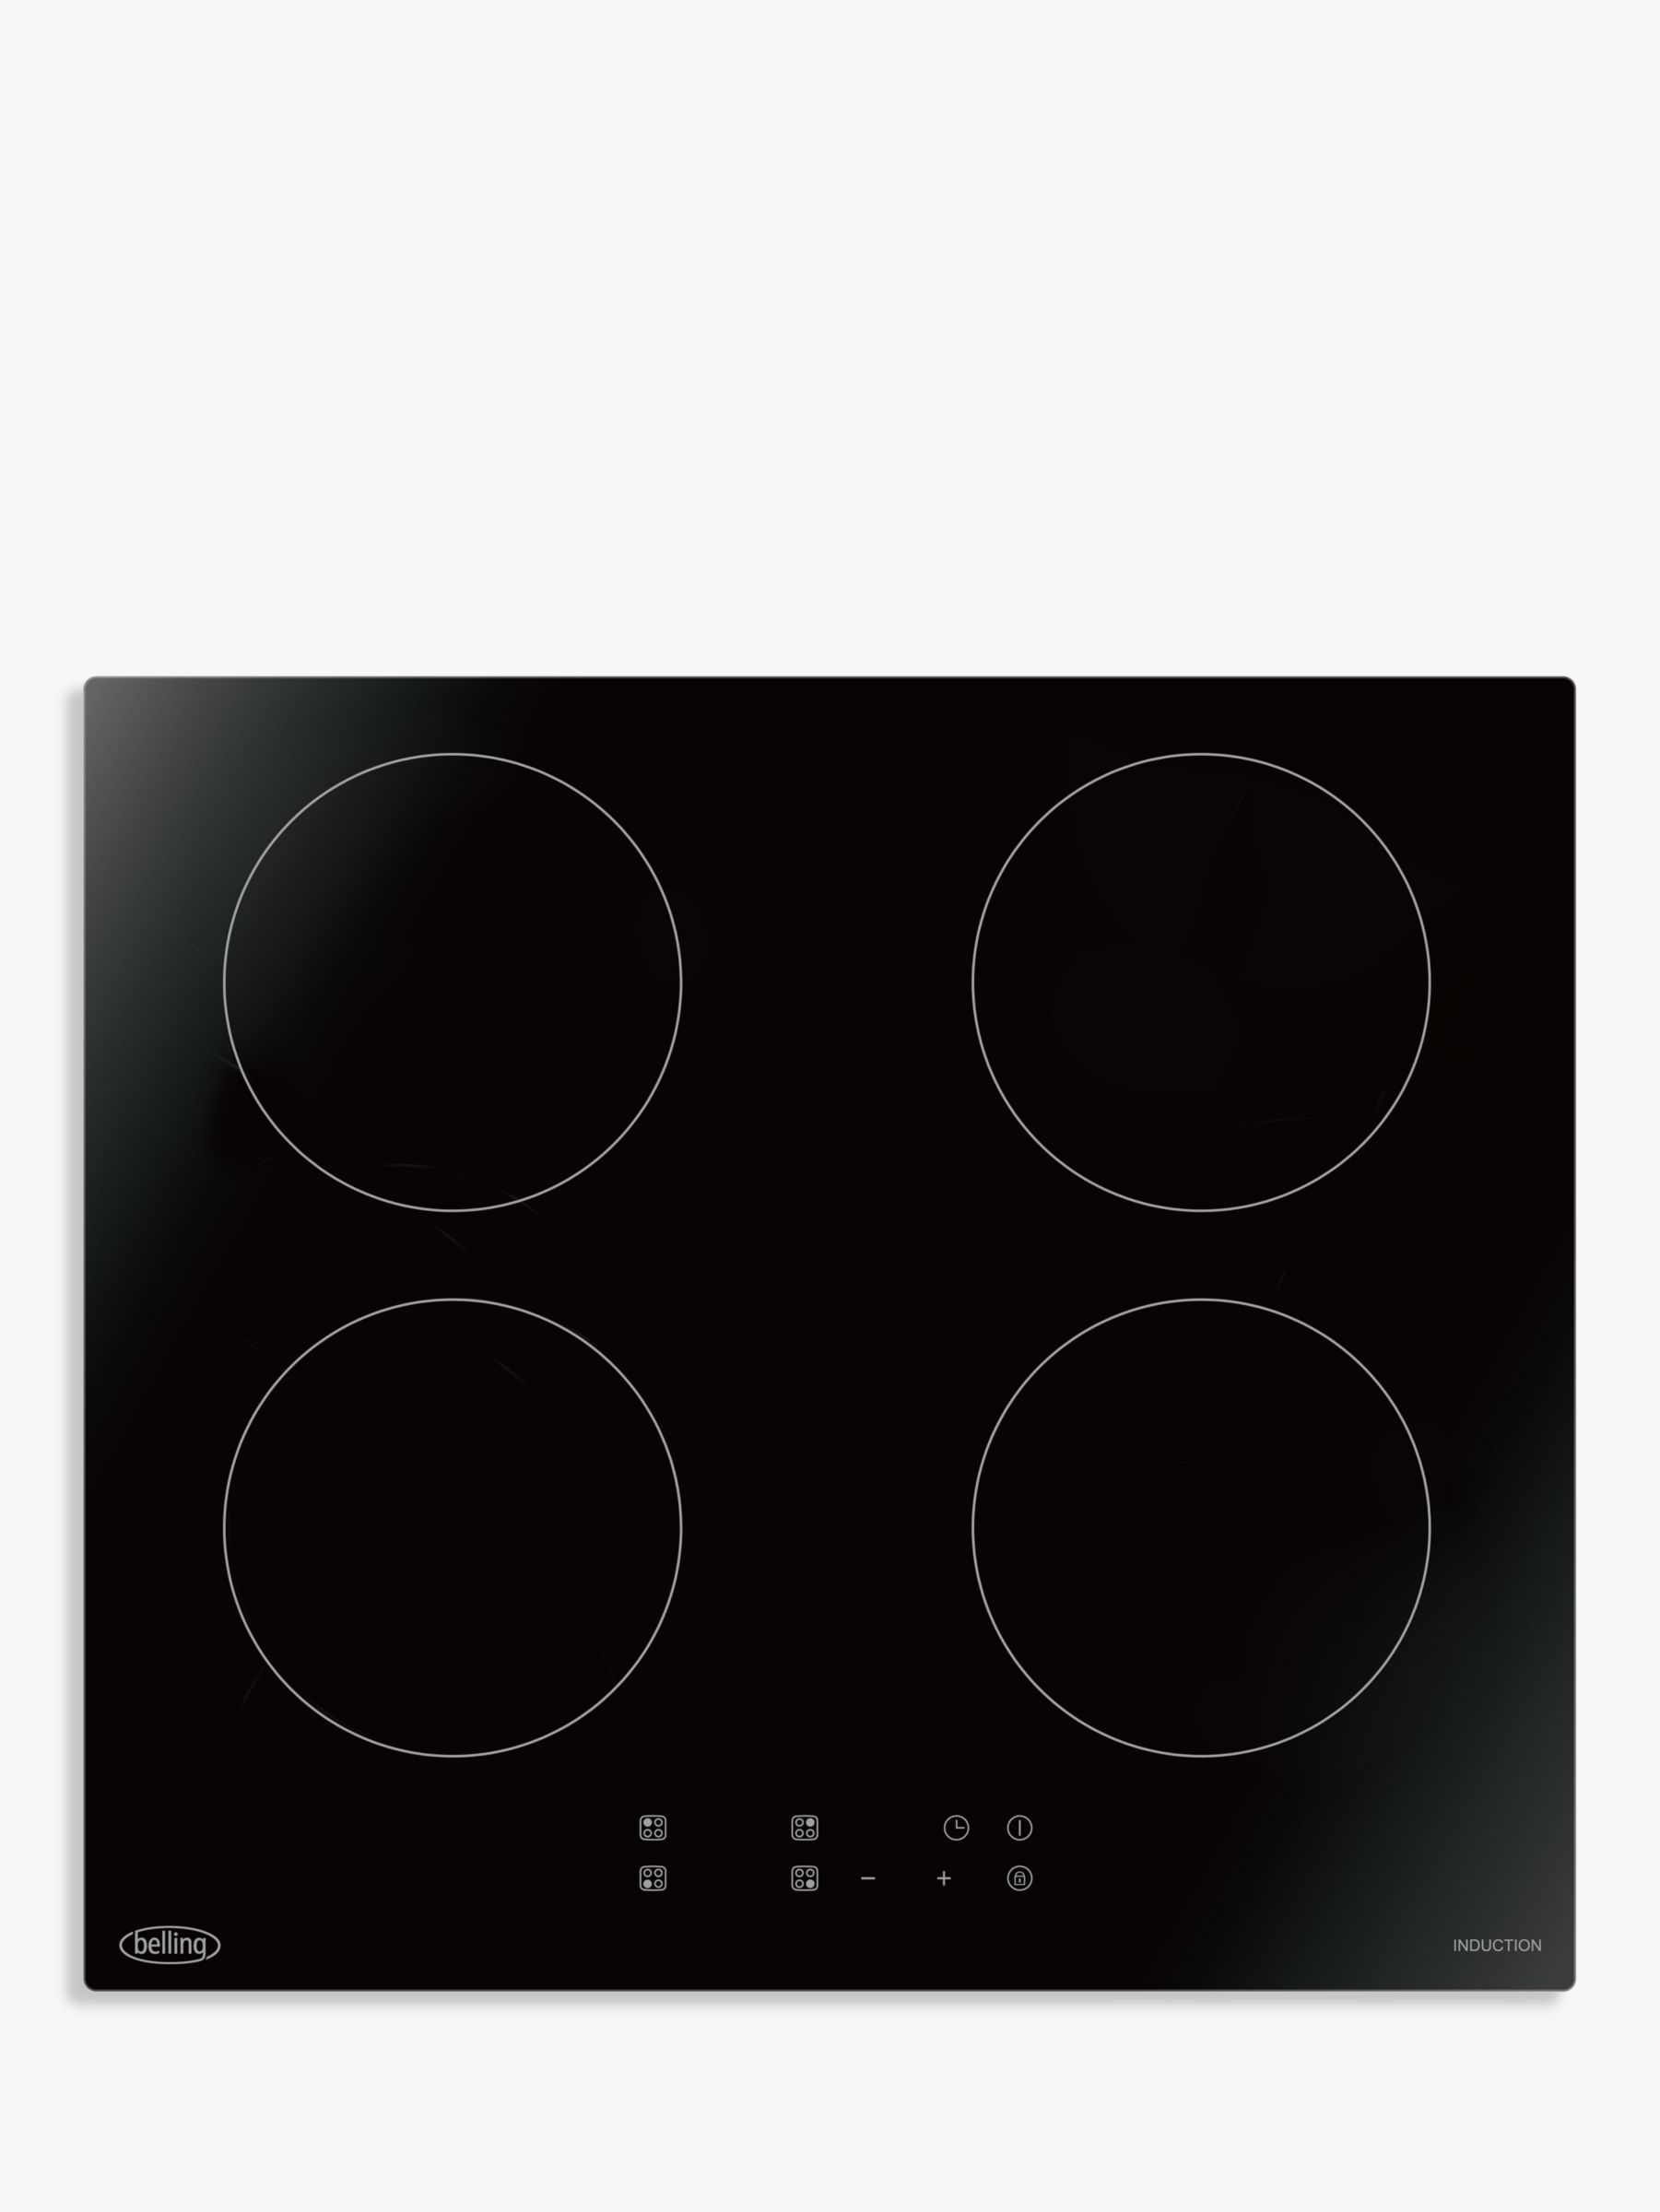 Belling Belling IHT602 Induction Digital Touch Control Hob, Black